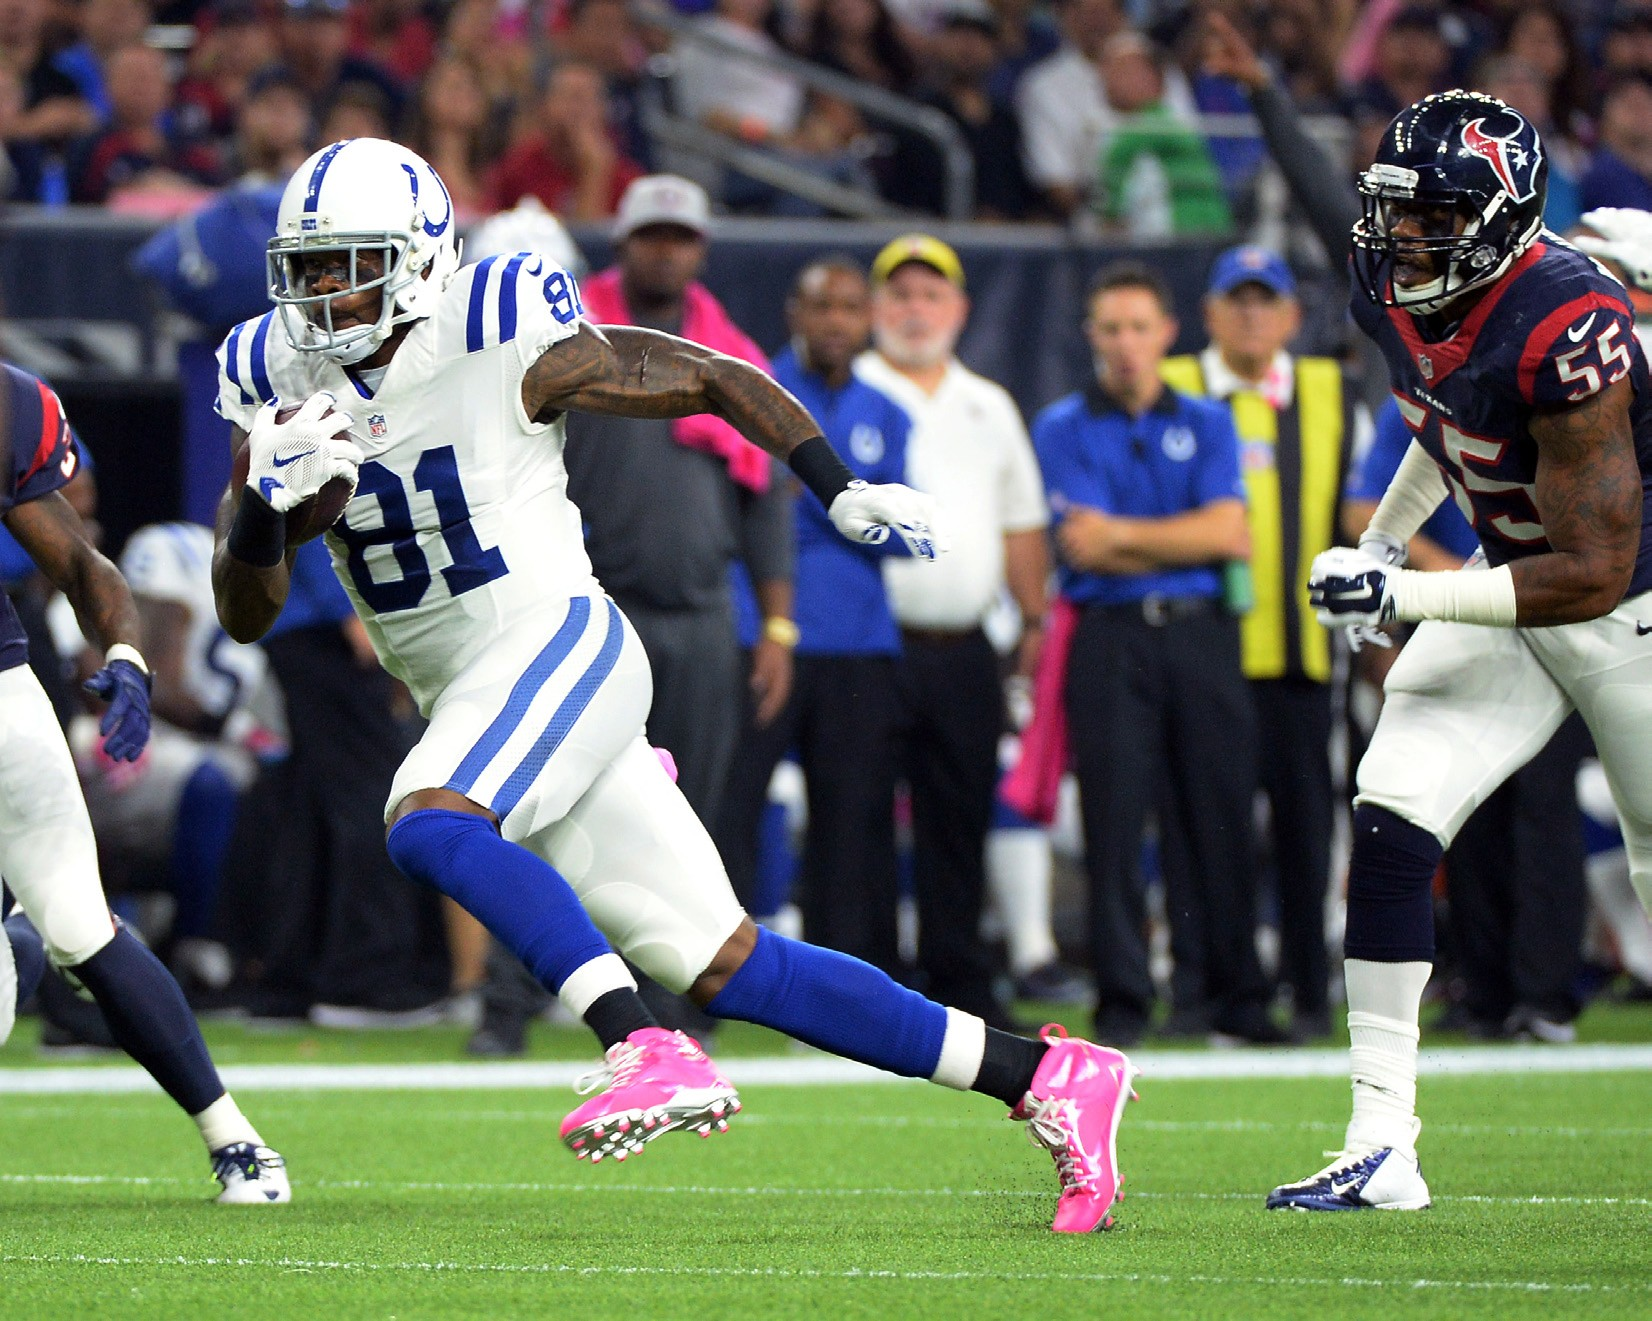 Indianapolis Colts' Andre Johnson is chased by Houston Texans' Benardrick McKinney (55) after a reception during the first half of an NFL football game Thursday in Houston.